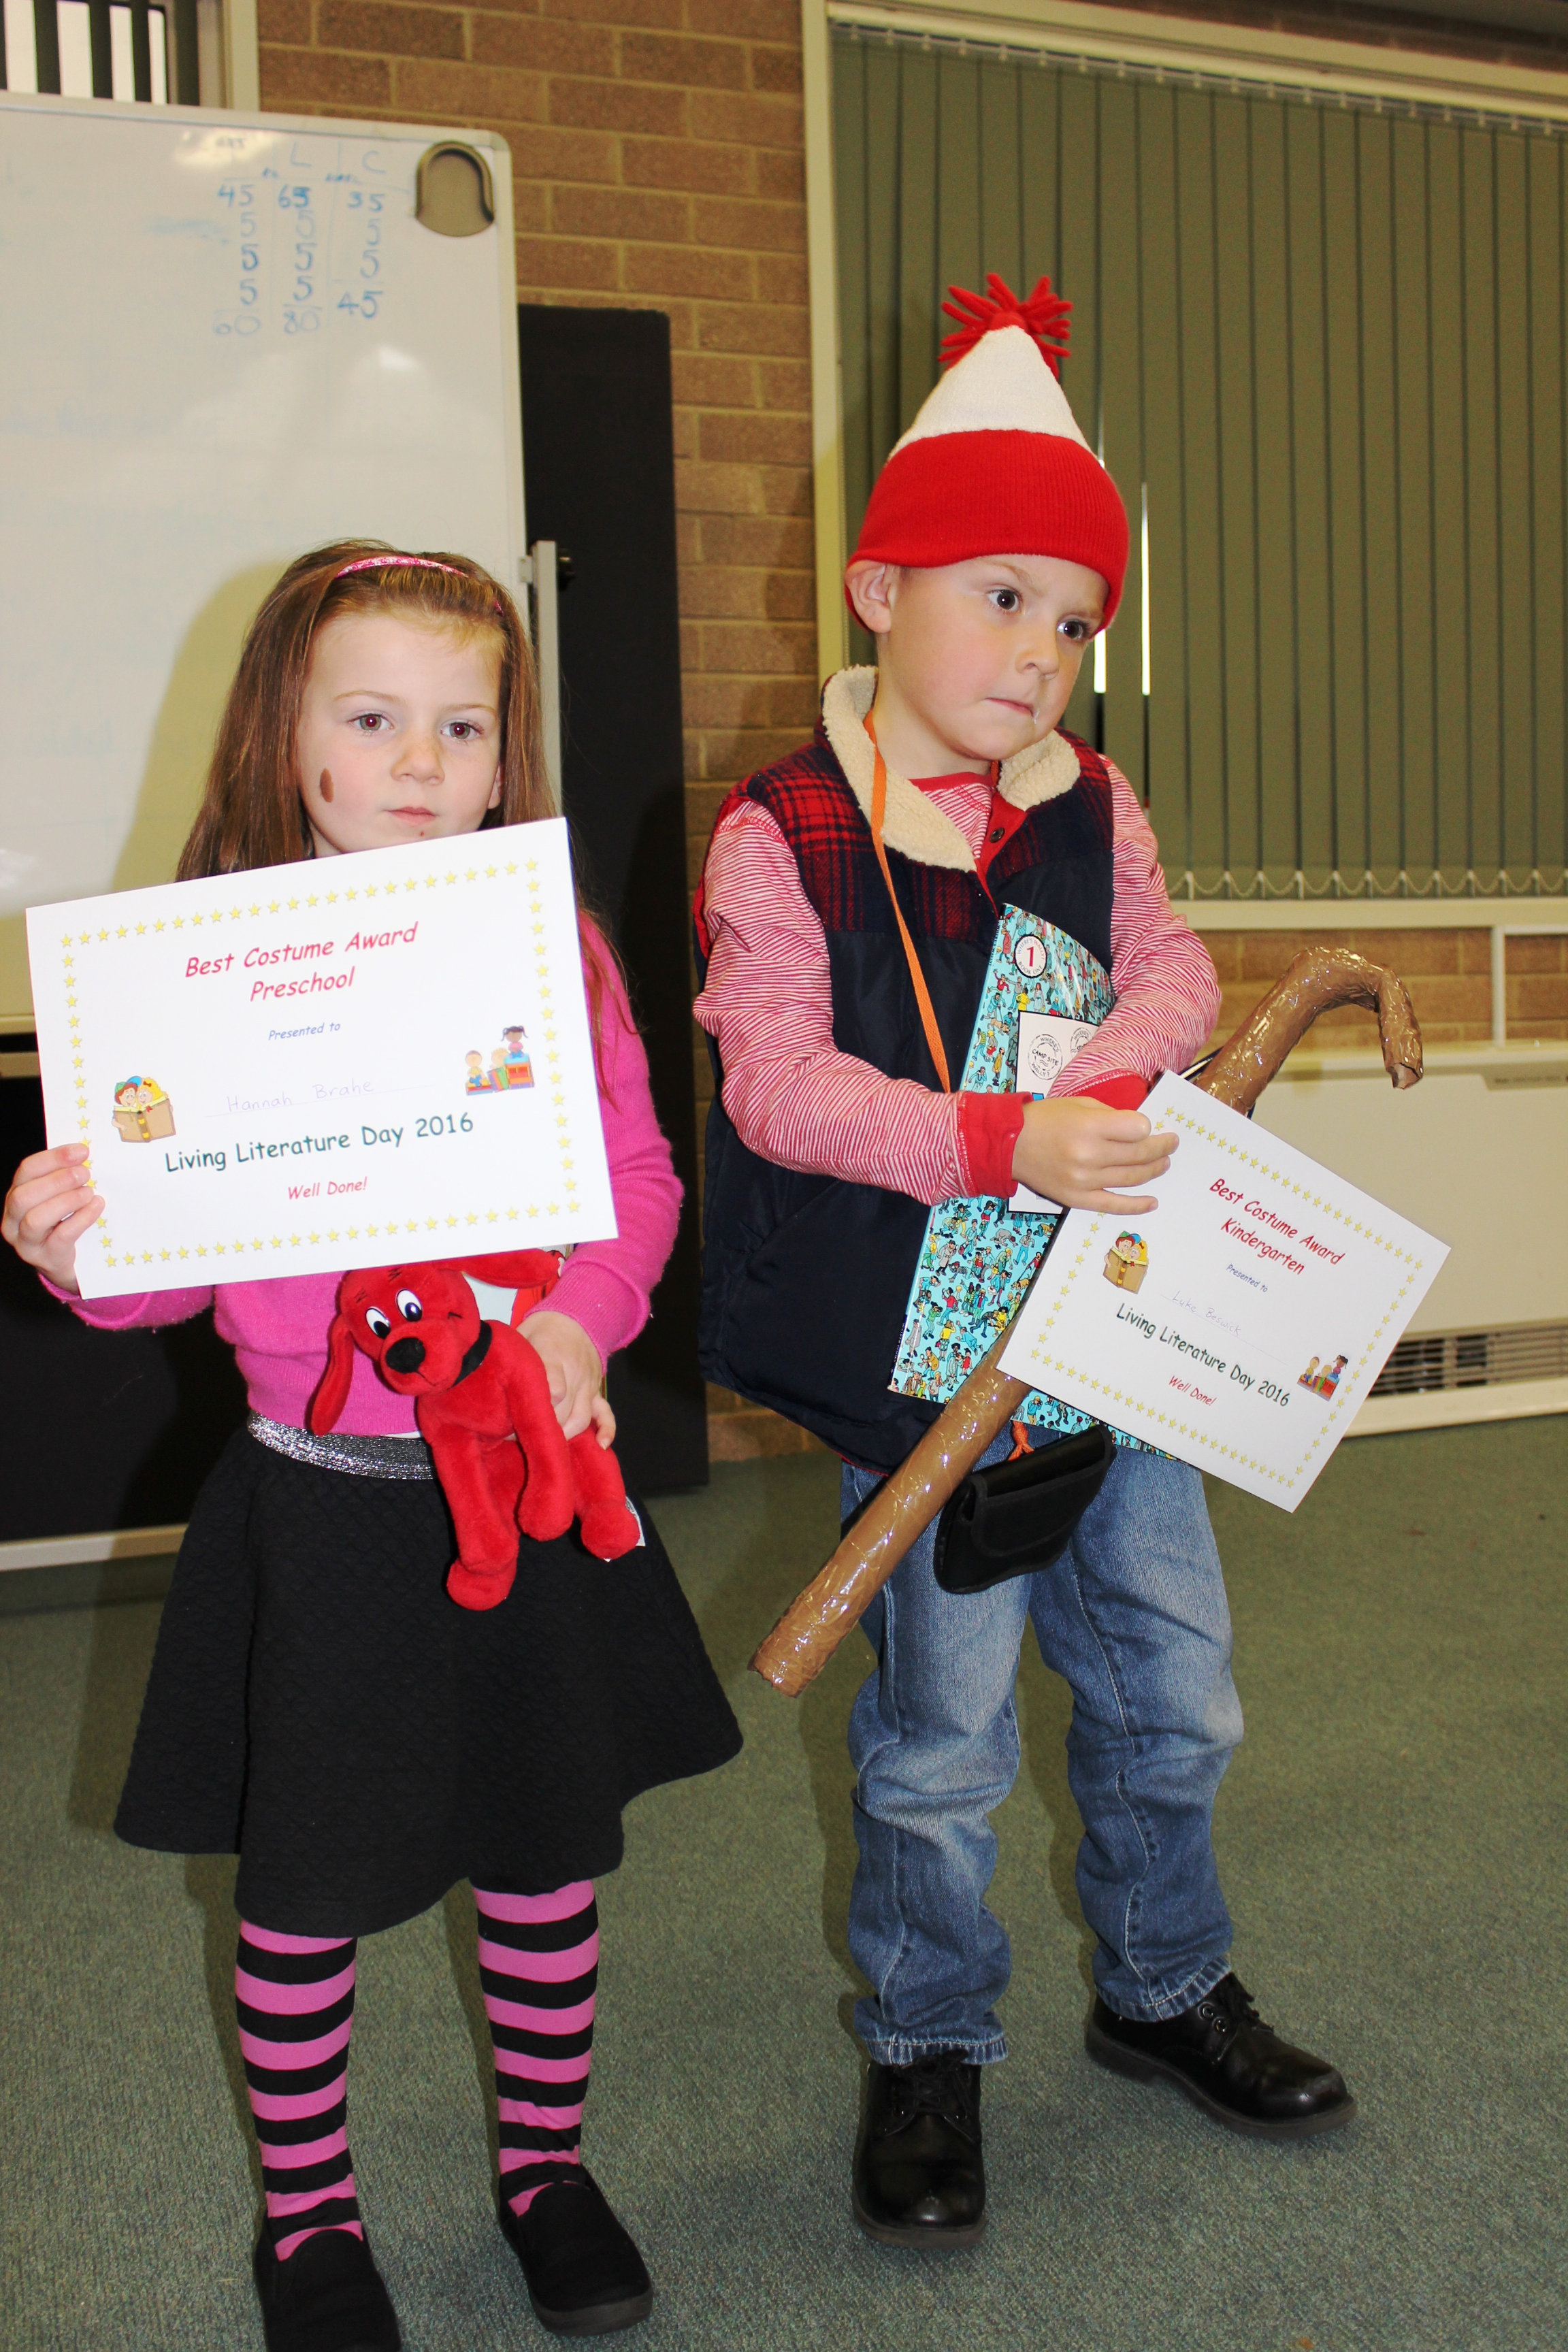 Preschool and Kind Winners